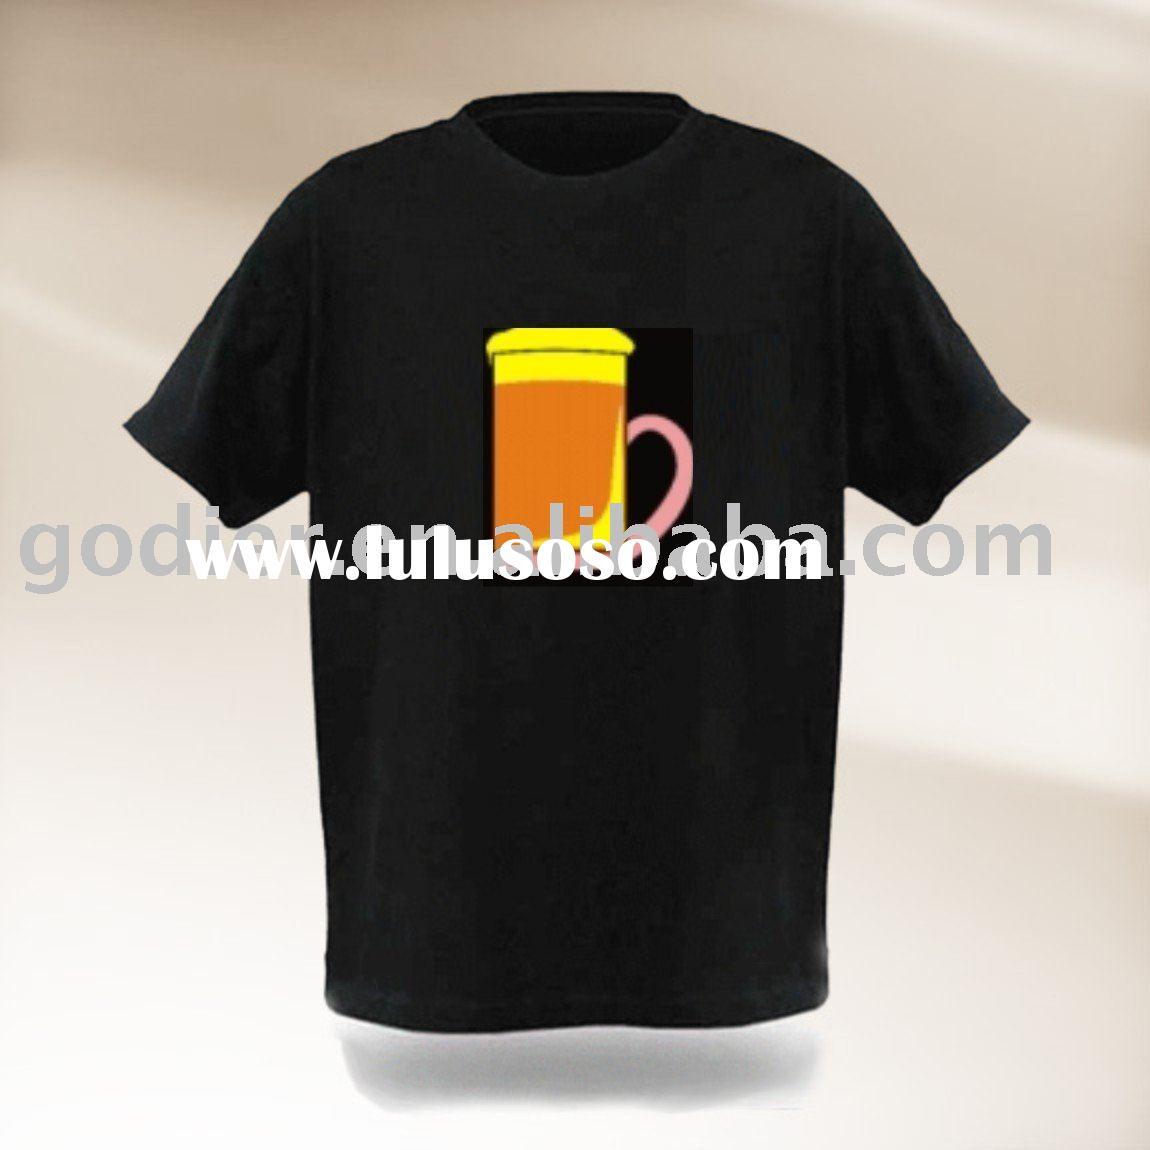 el flashing t shirt,factory direct supply,custom logo design,wholesale price,accept paypal